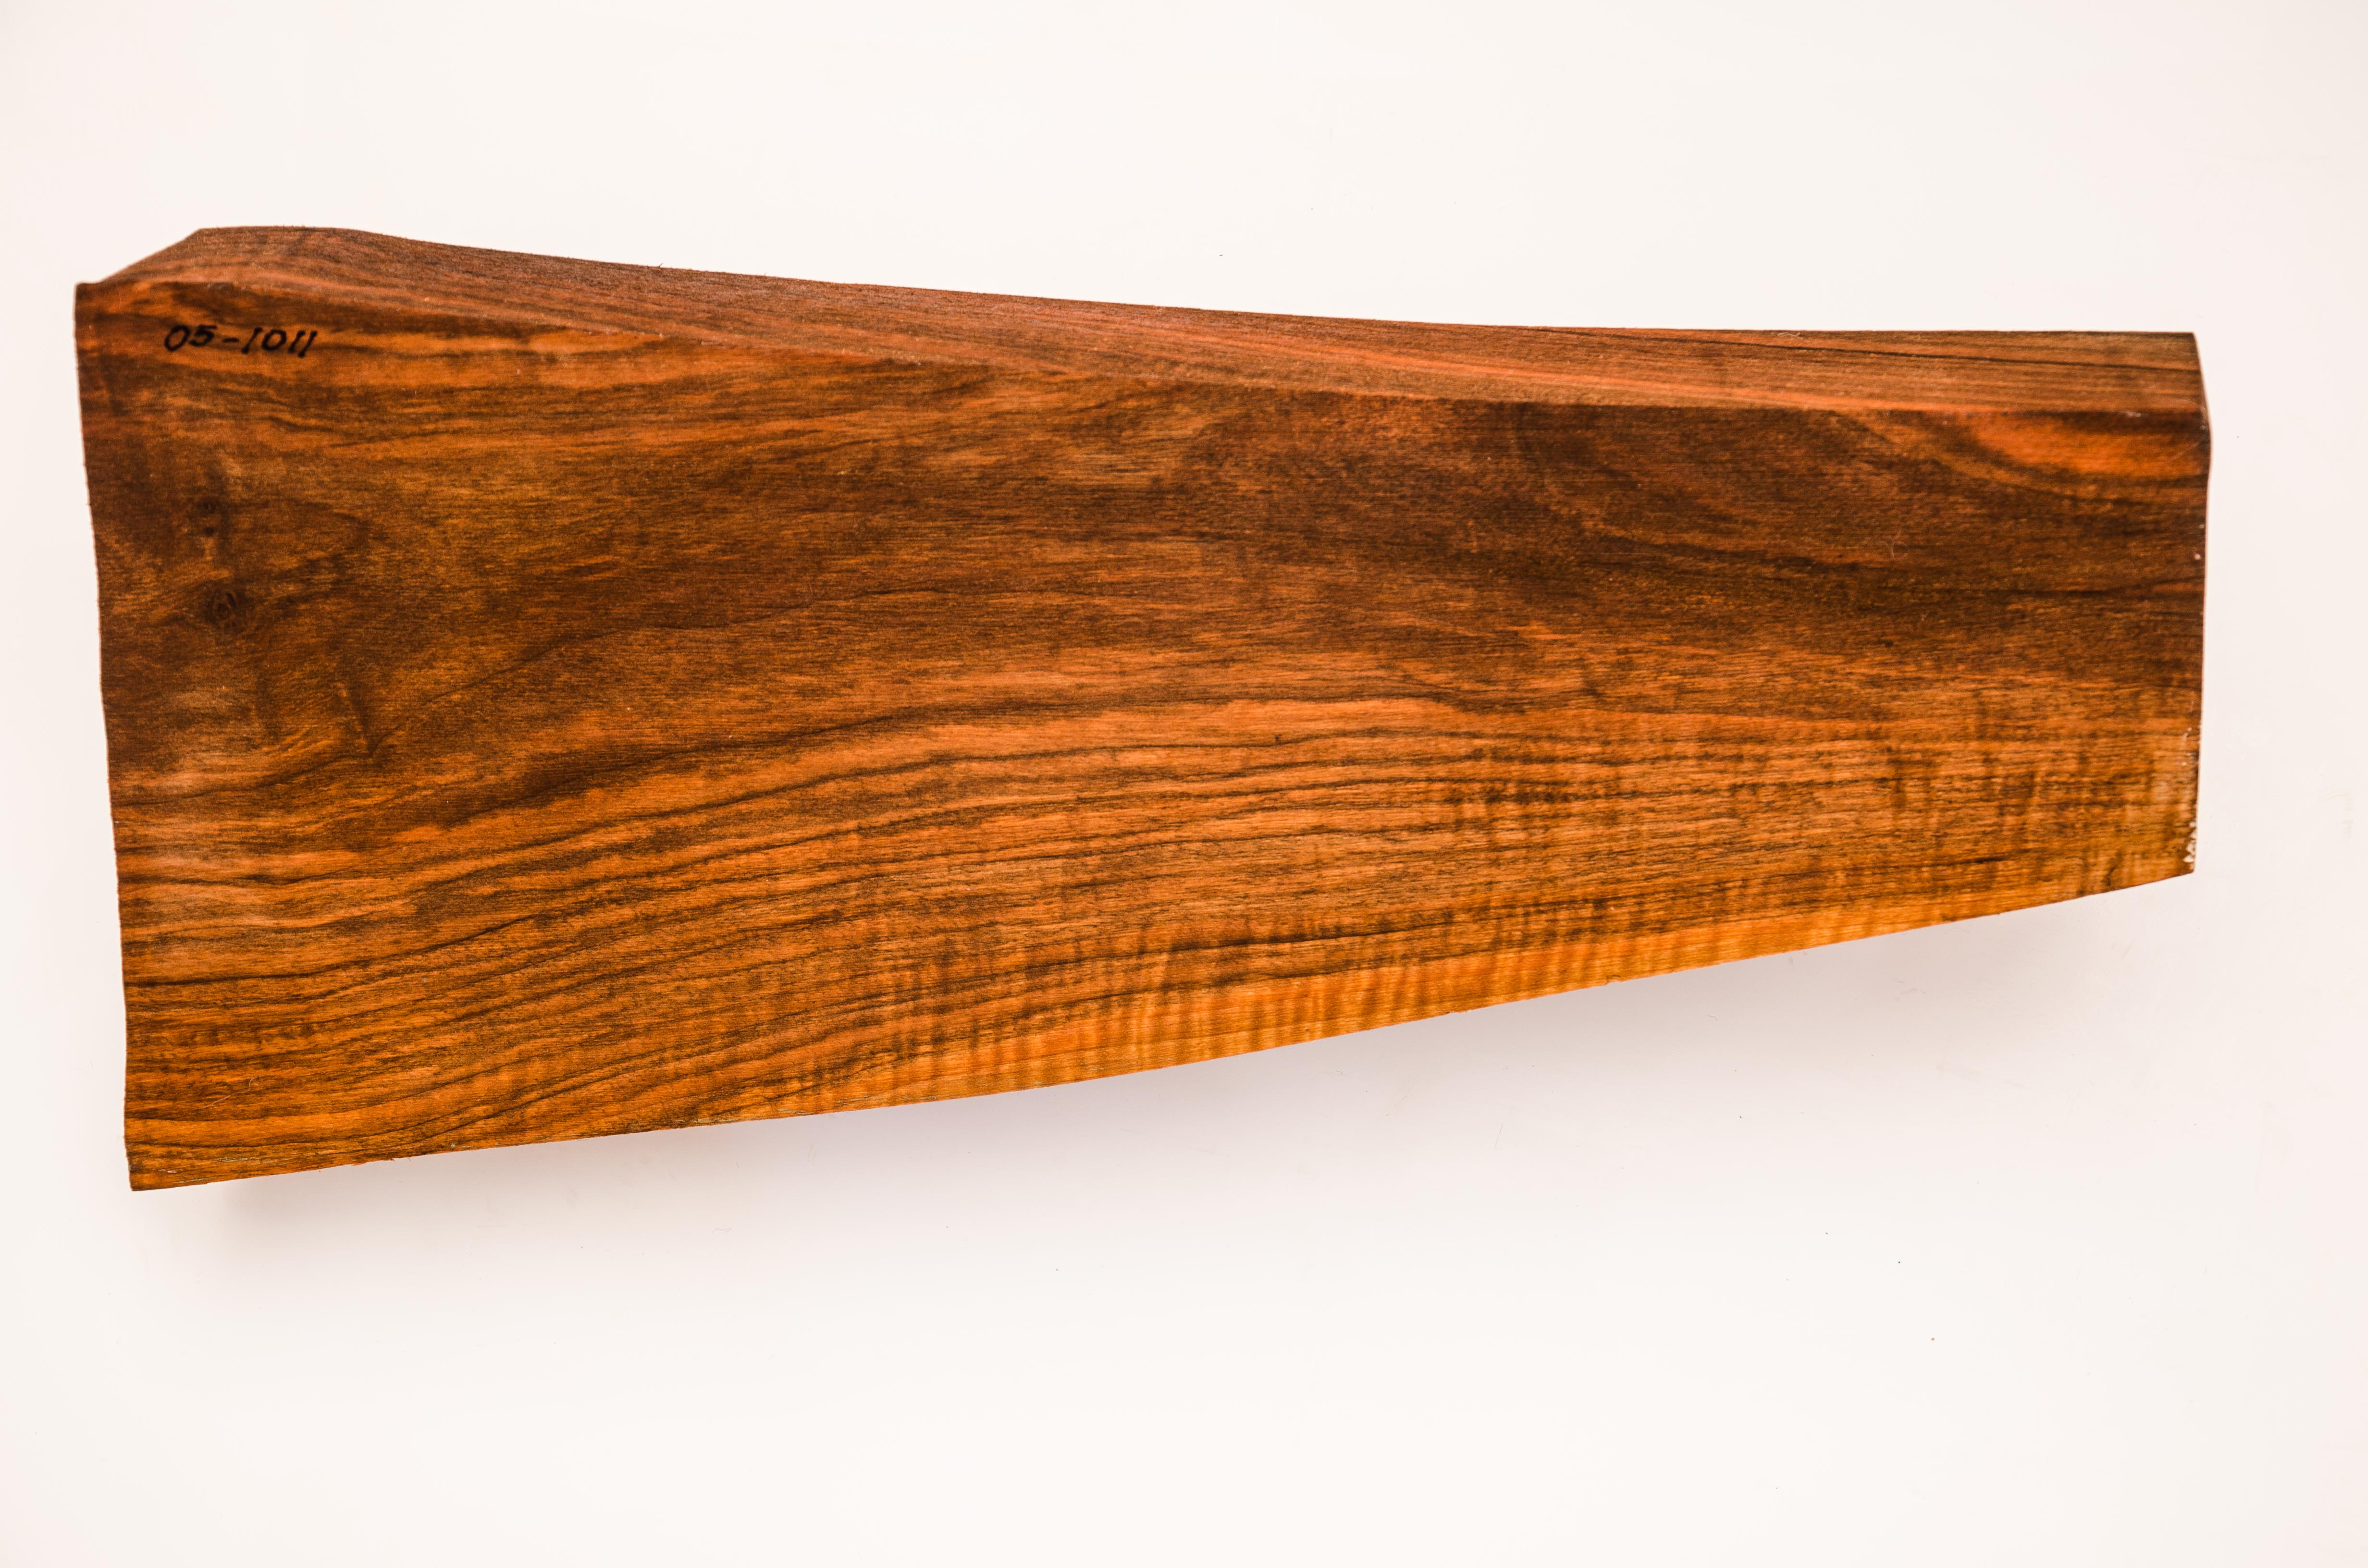 walnut_stock_blanks_for_guns_and_rifles-0552